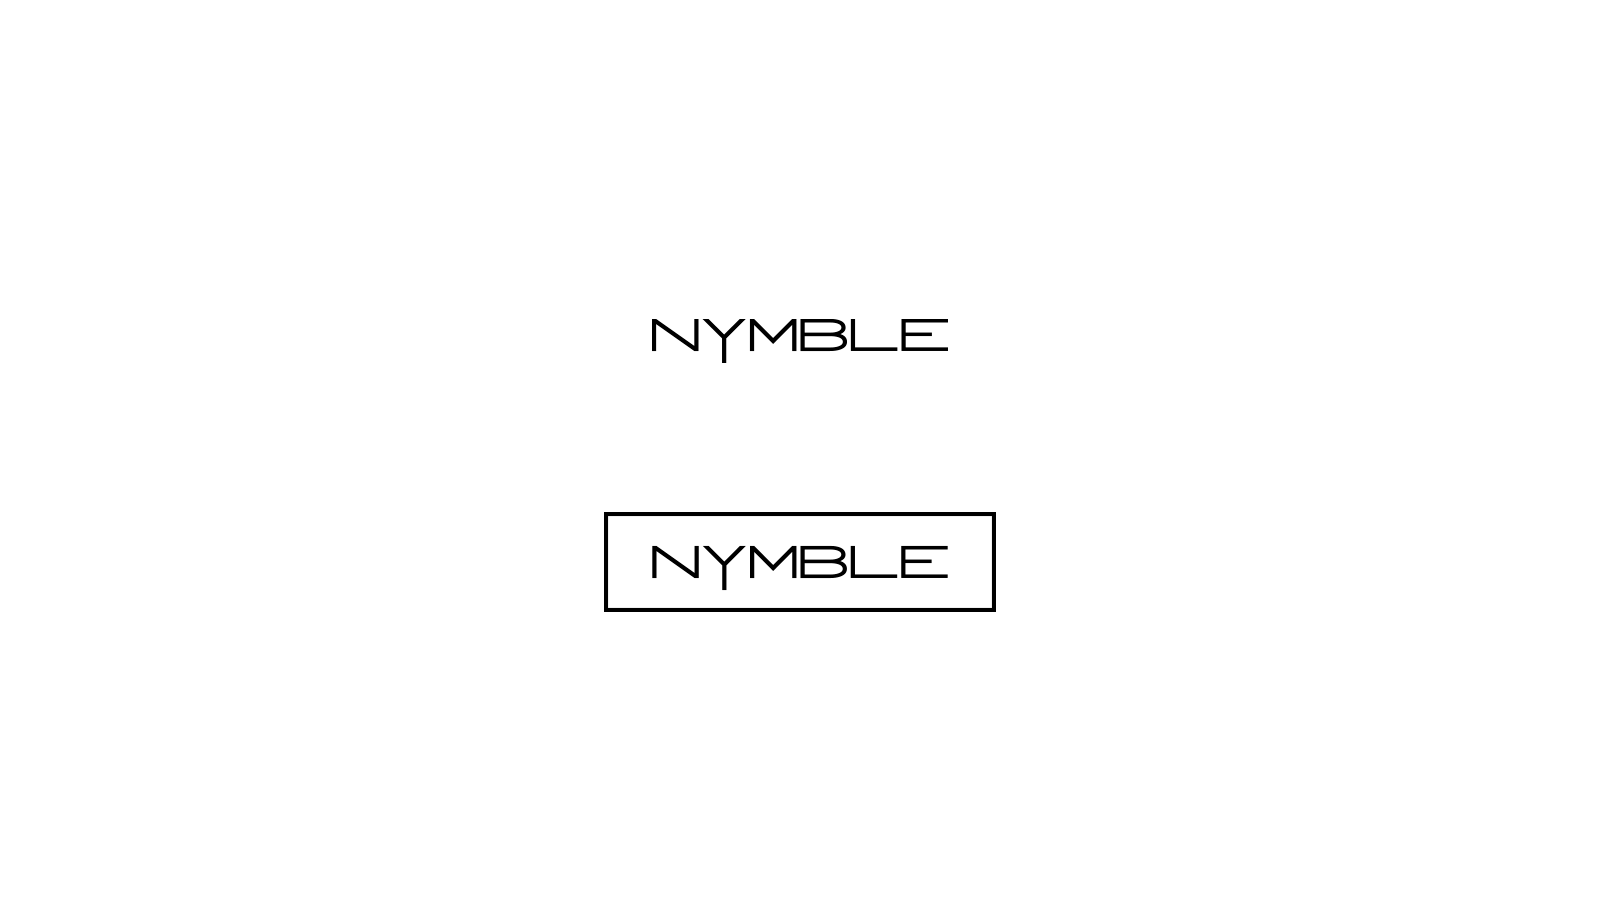 Nymble 2.png